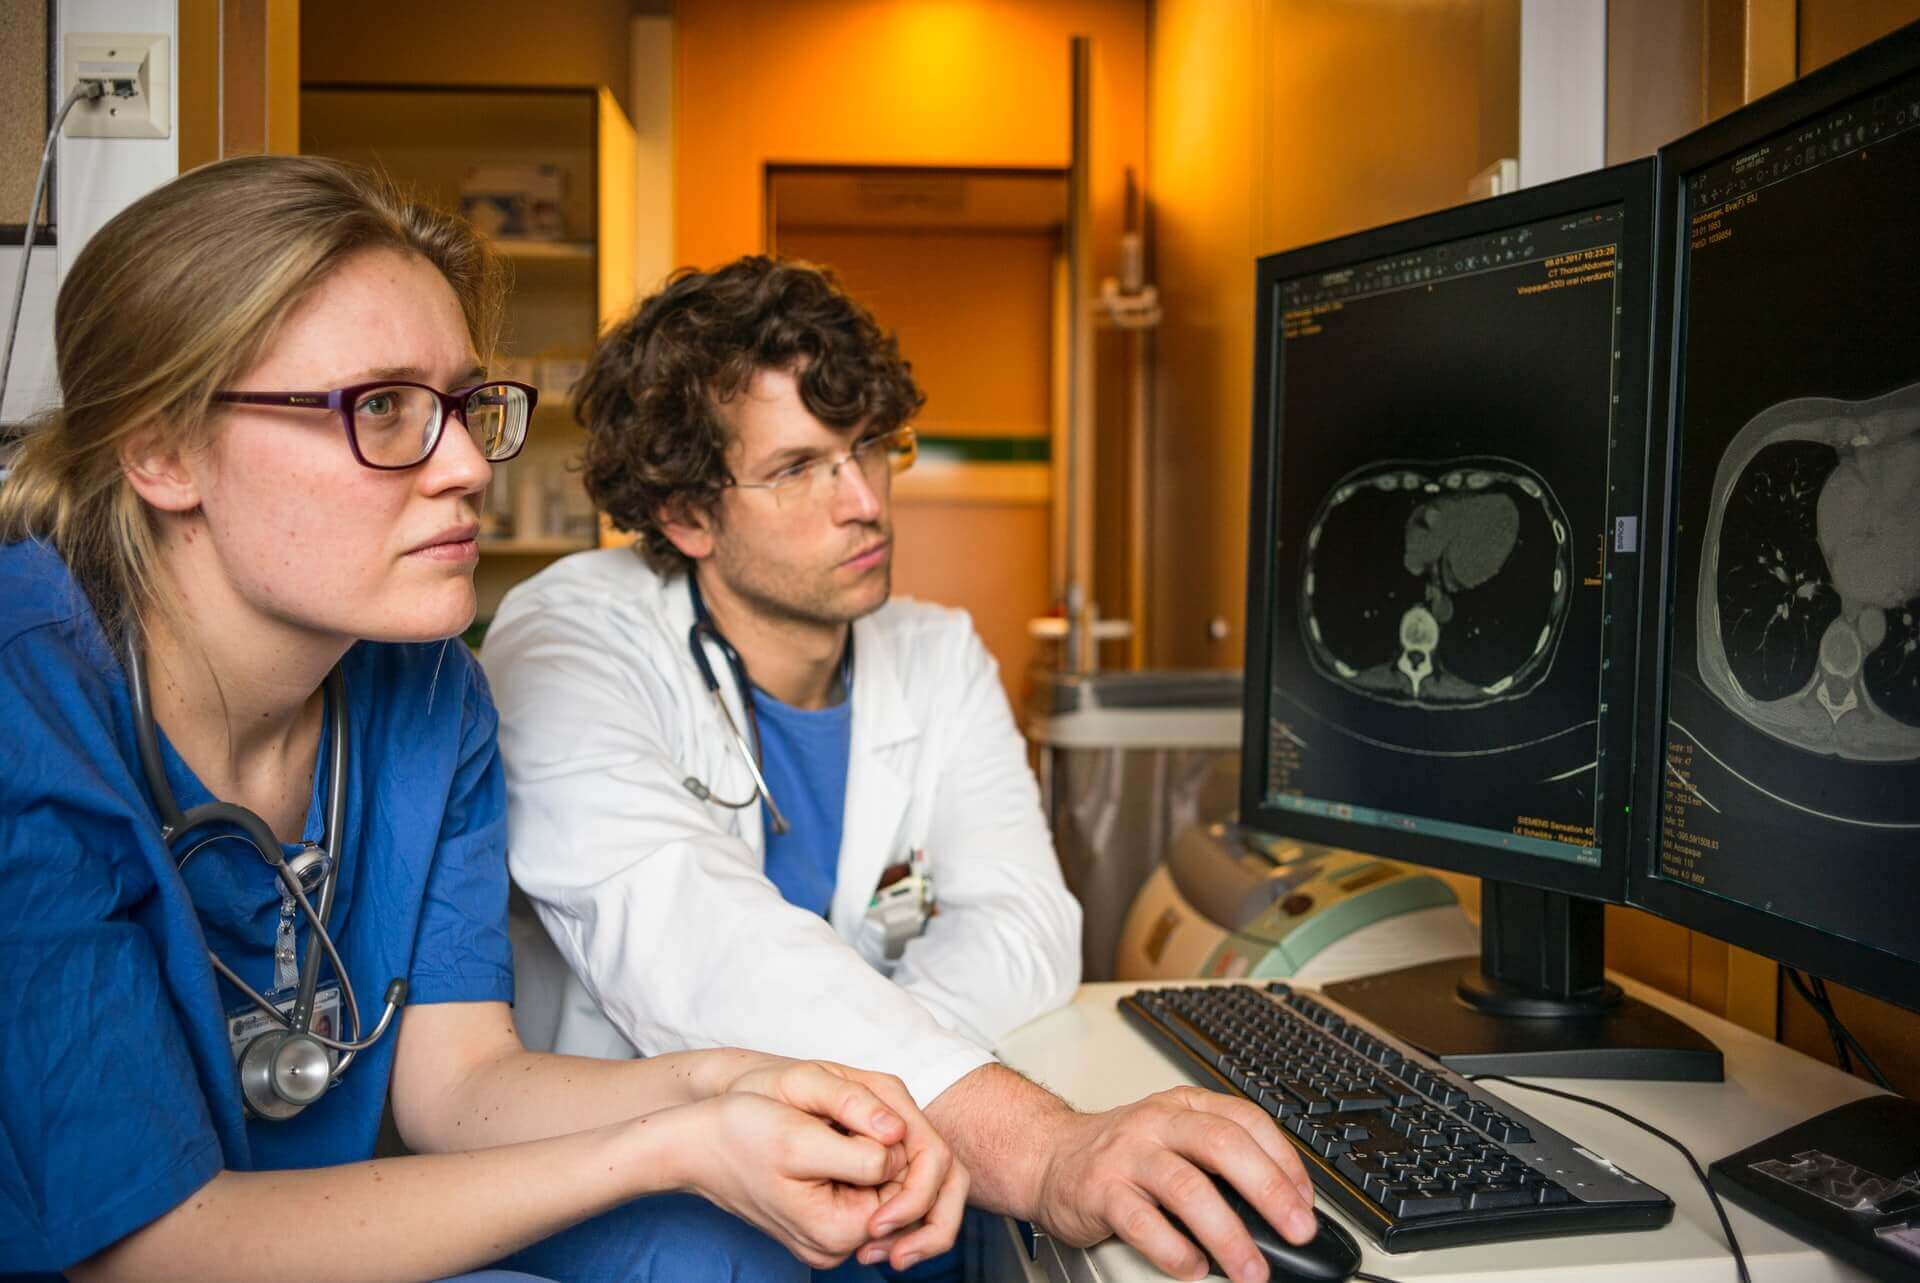 Two doctors look at MRI results on a computer screen.